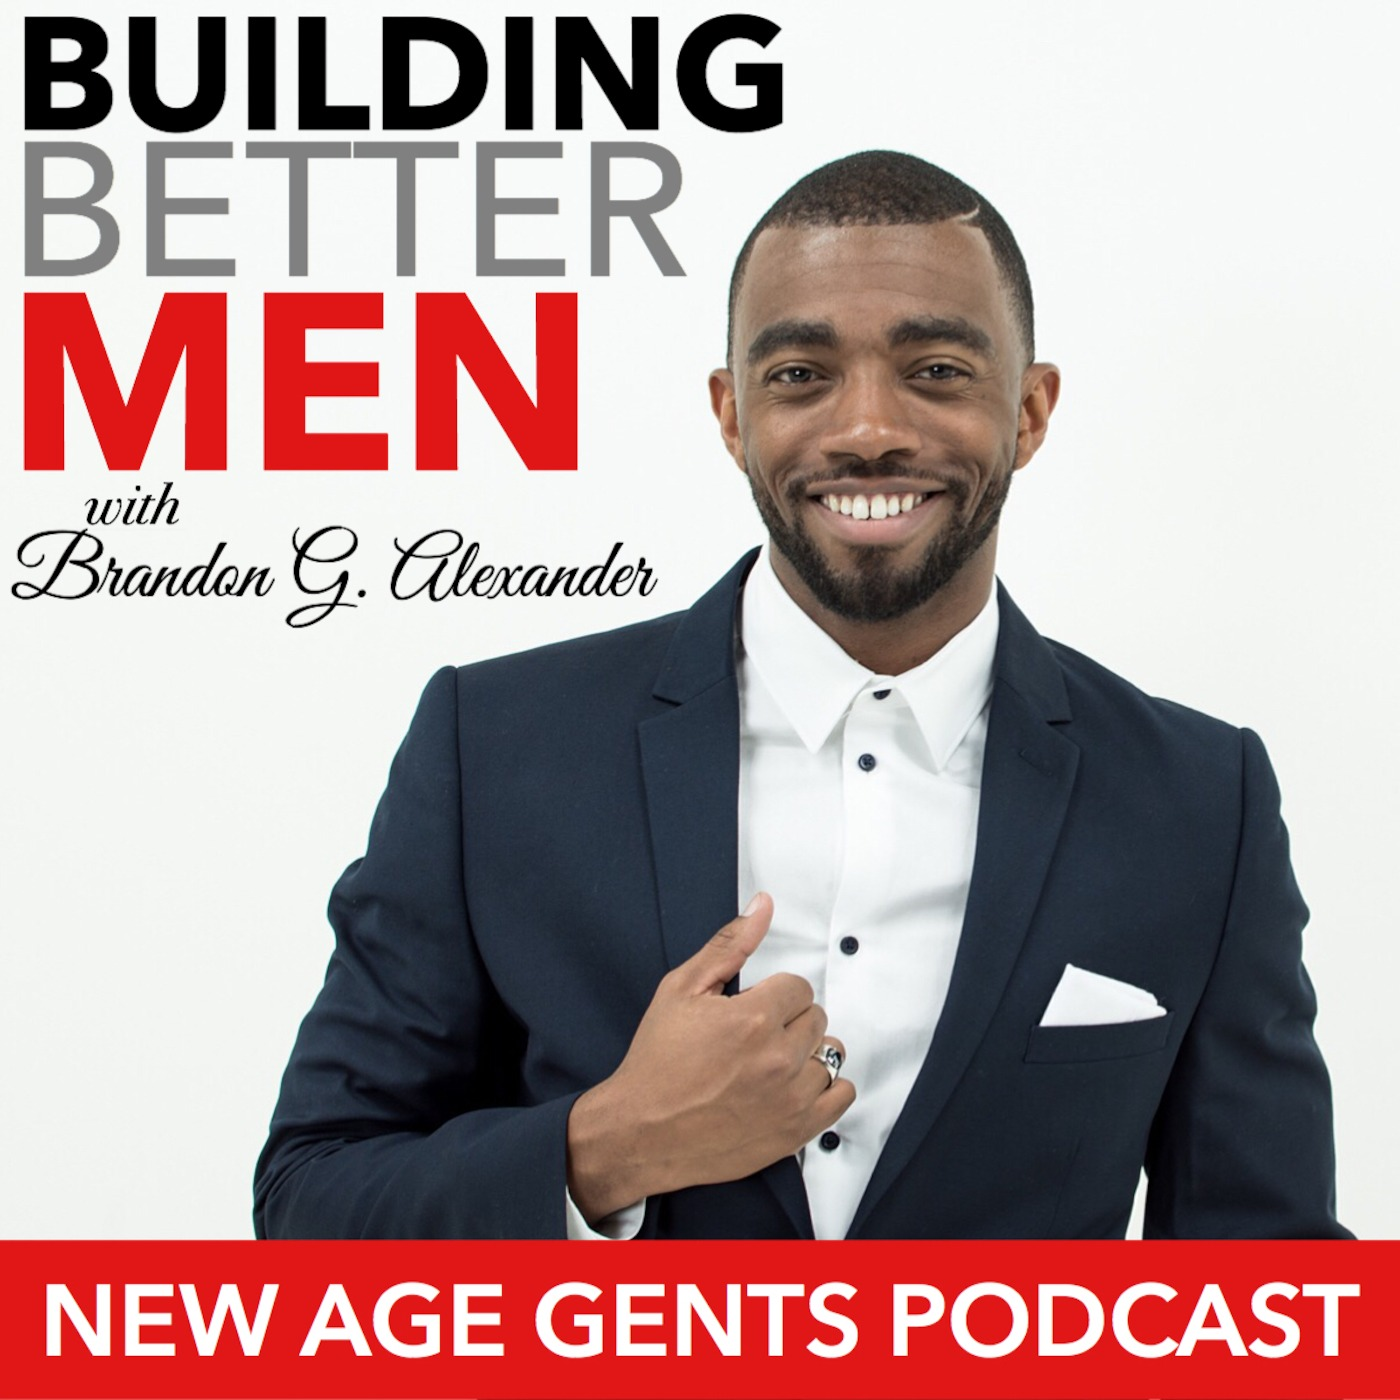 New Age Gents Podcast: Building Better Men